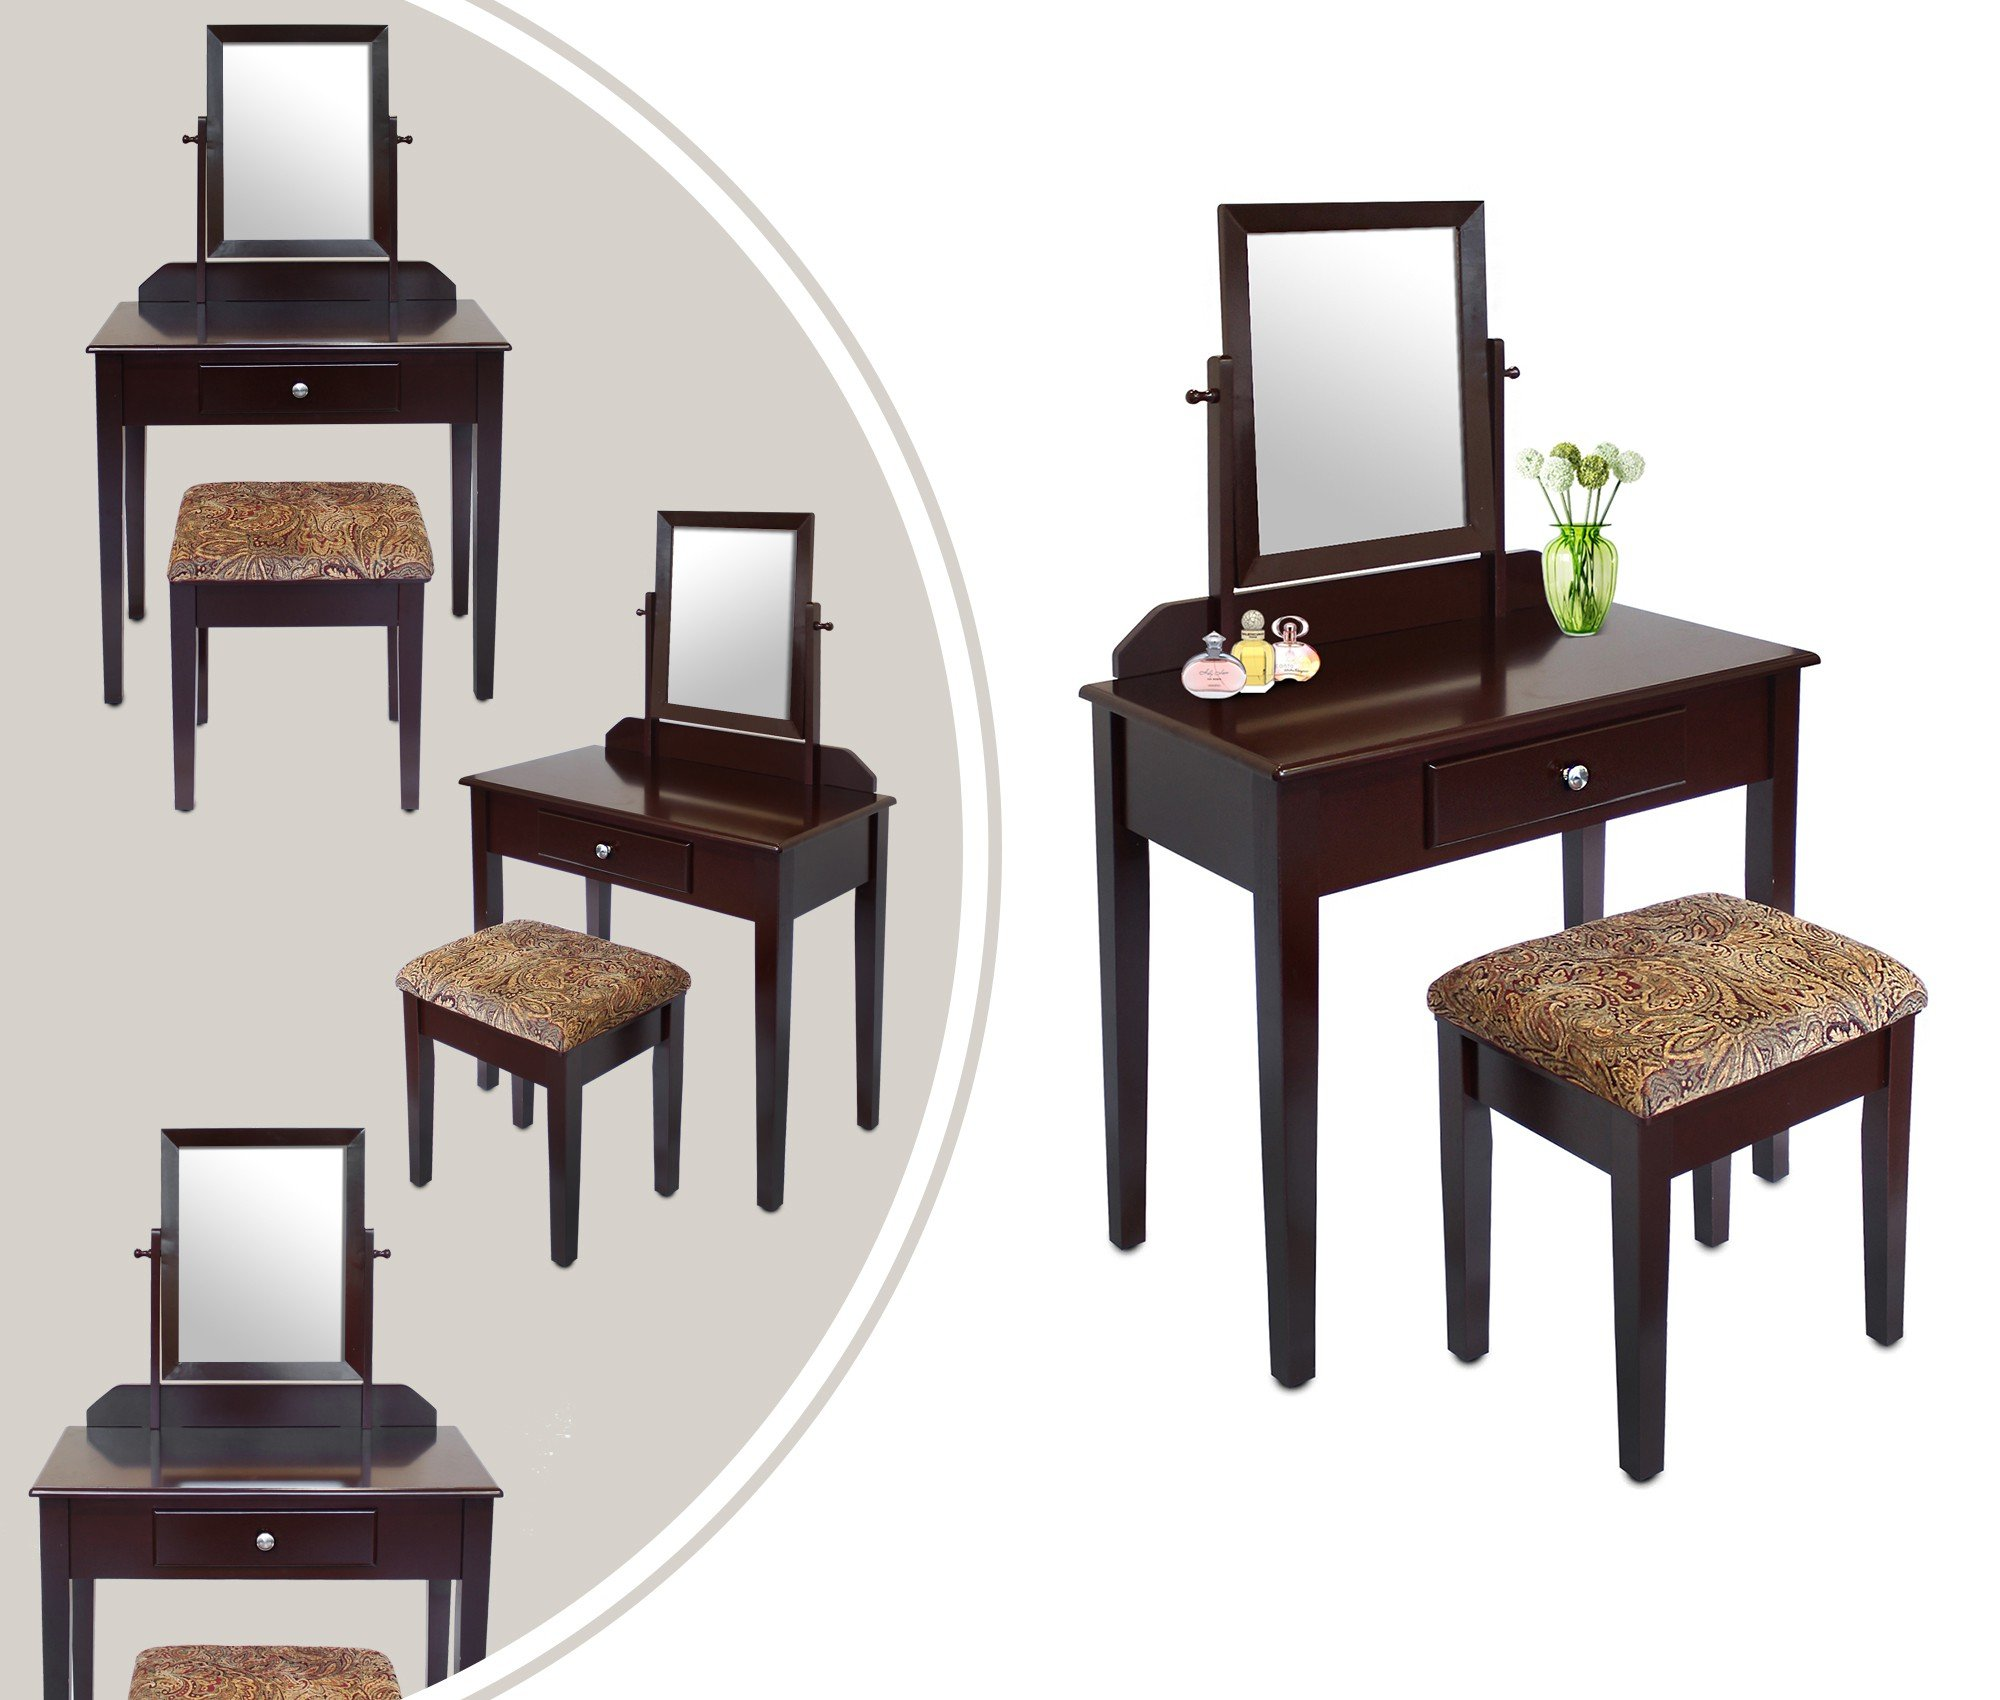 leogreen coiffeuse meuble pour se maquiller inspid co. Black Bedroom Furniture Sets. Home Design Ideas